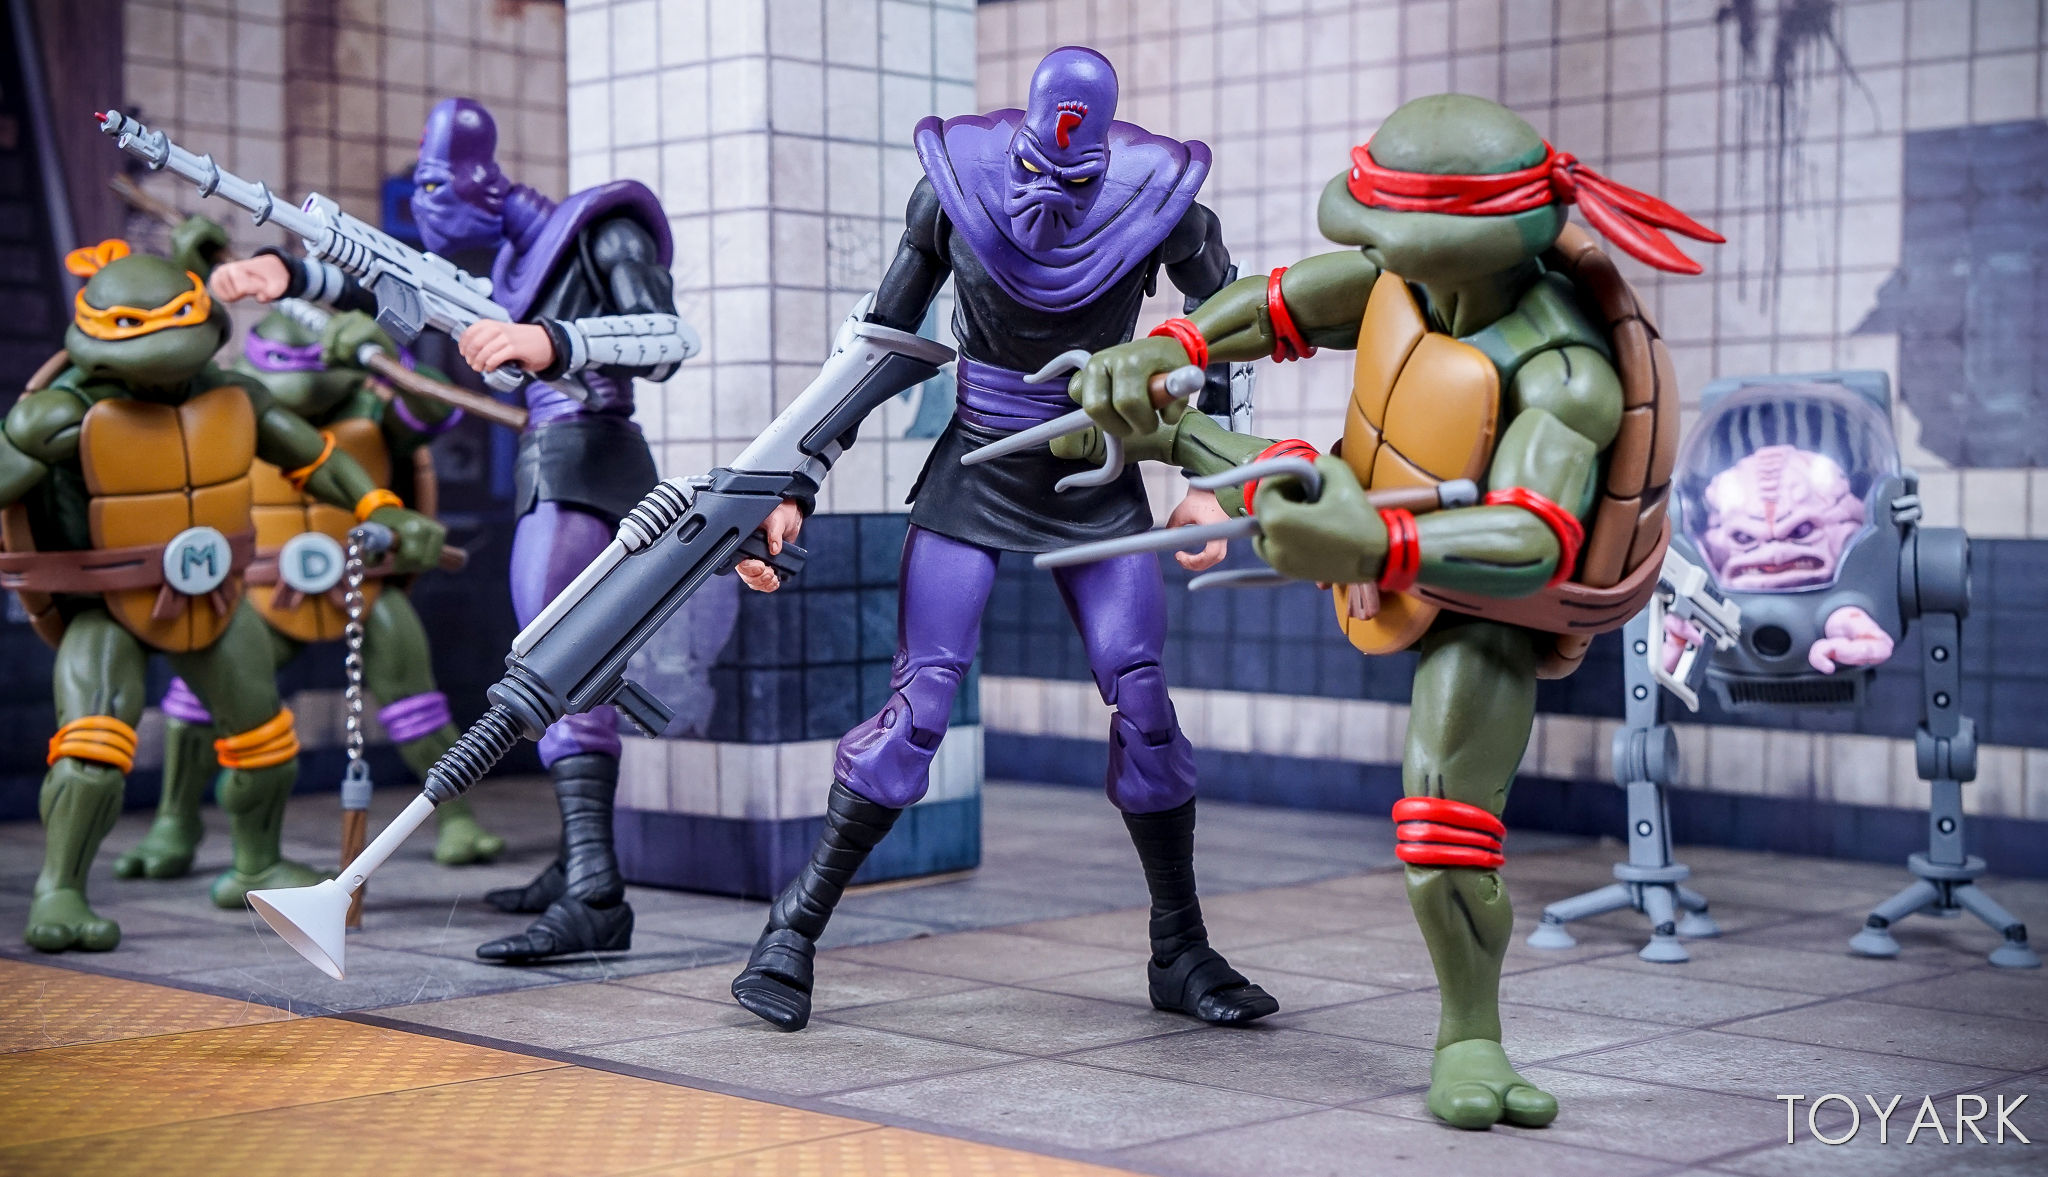 http://news.toyark.com/wp-content/uploads/sites/4/2017/07/NECA-SDCC-2017-Toon-TMNT-077.jpg